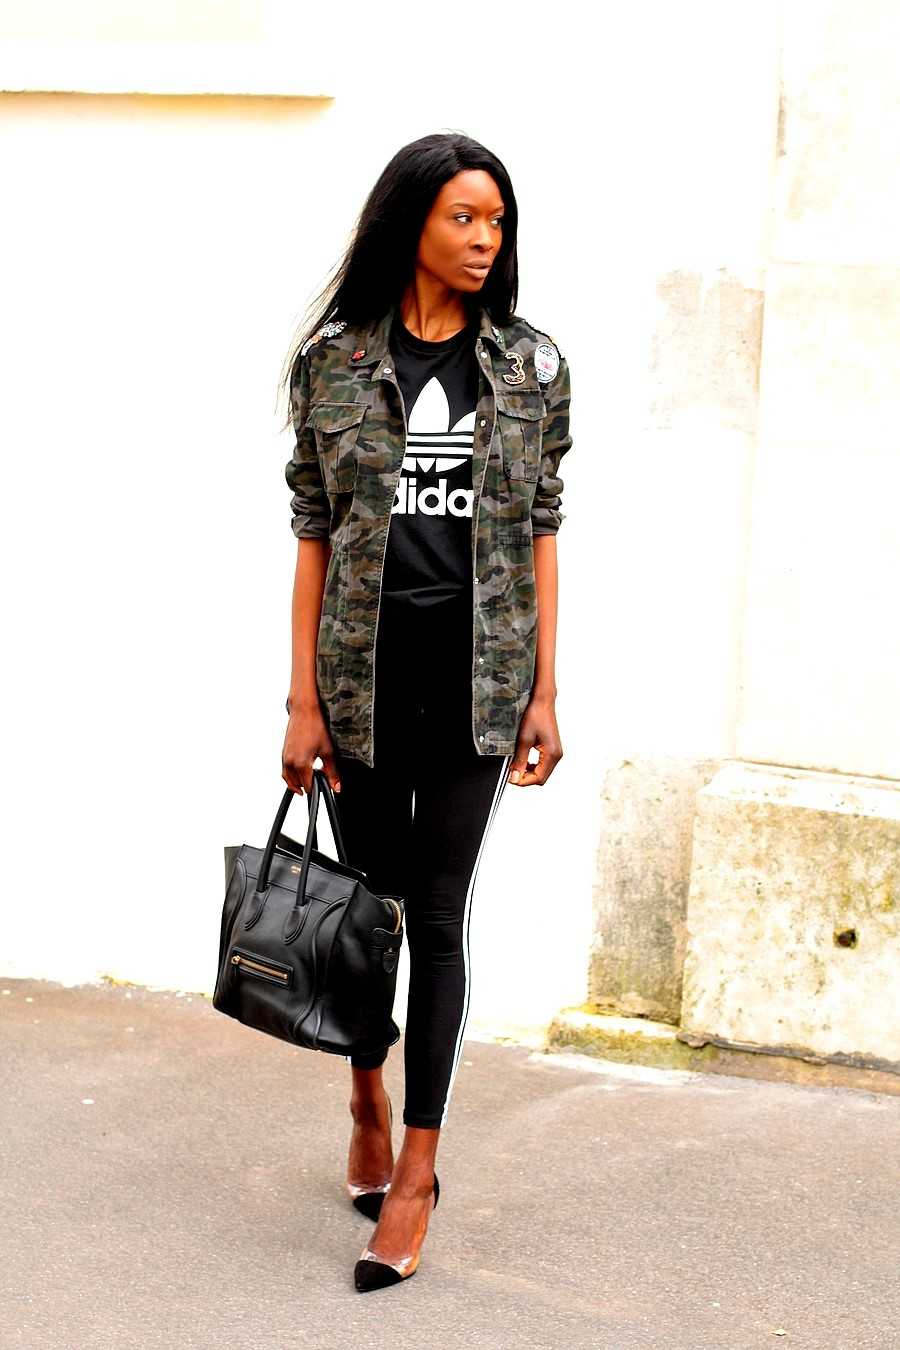 celine-mini-luggage-bag-camo-jacket-adidas-leggings-fashion-blogger